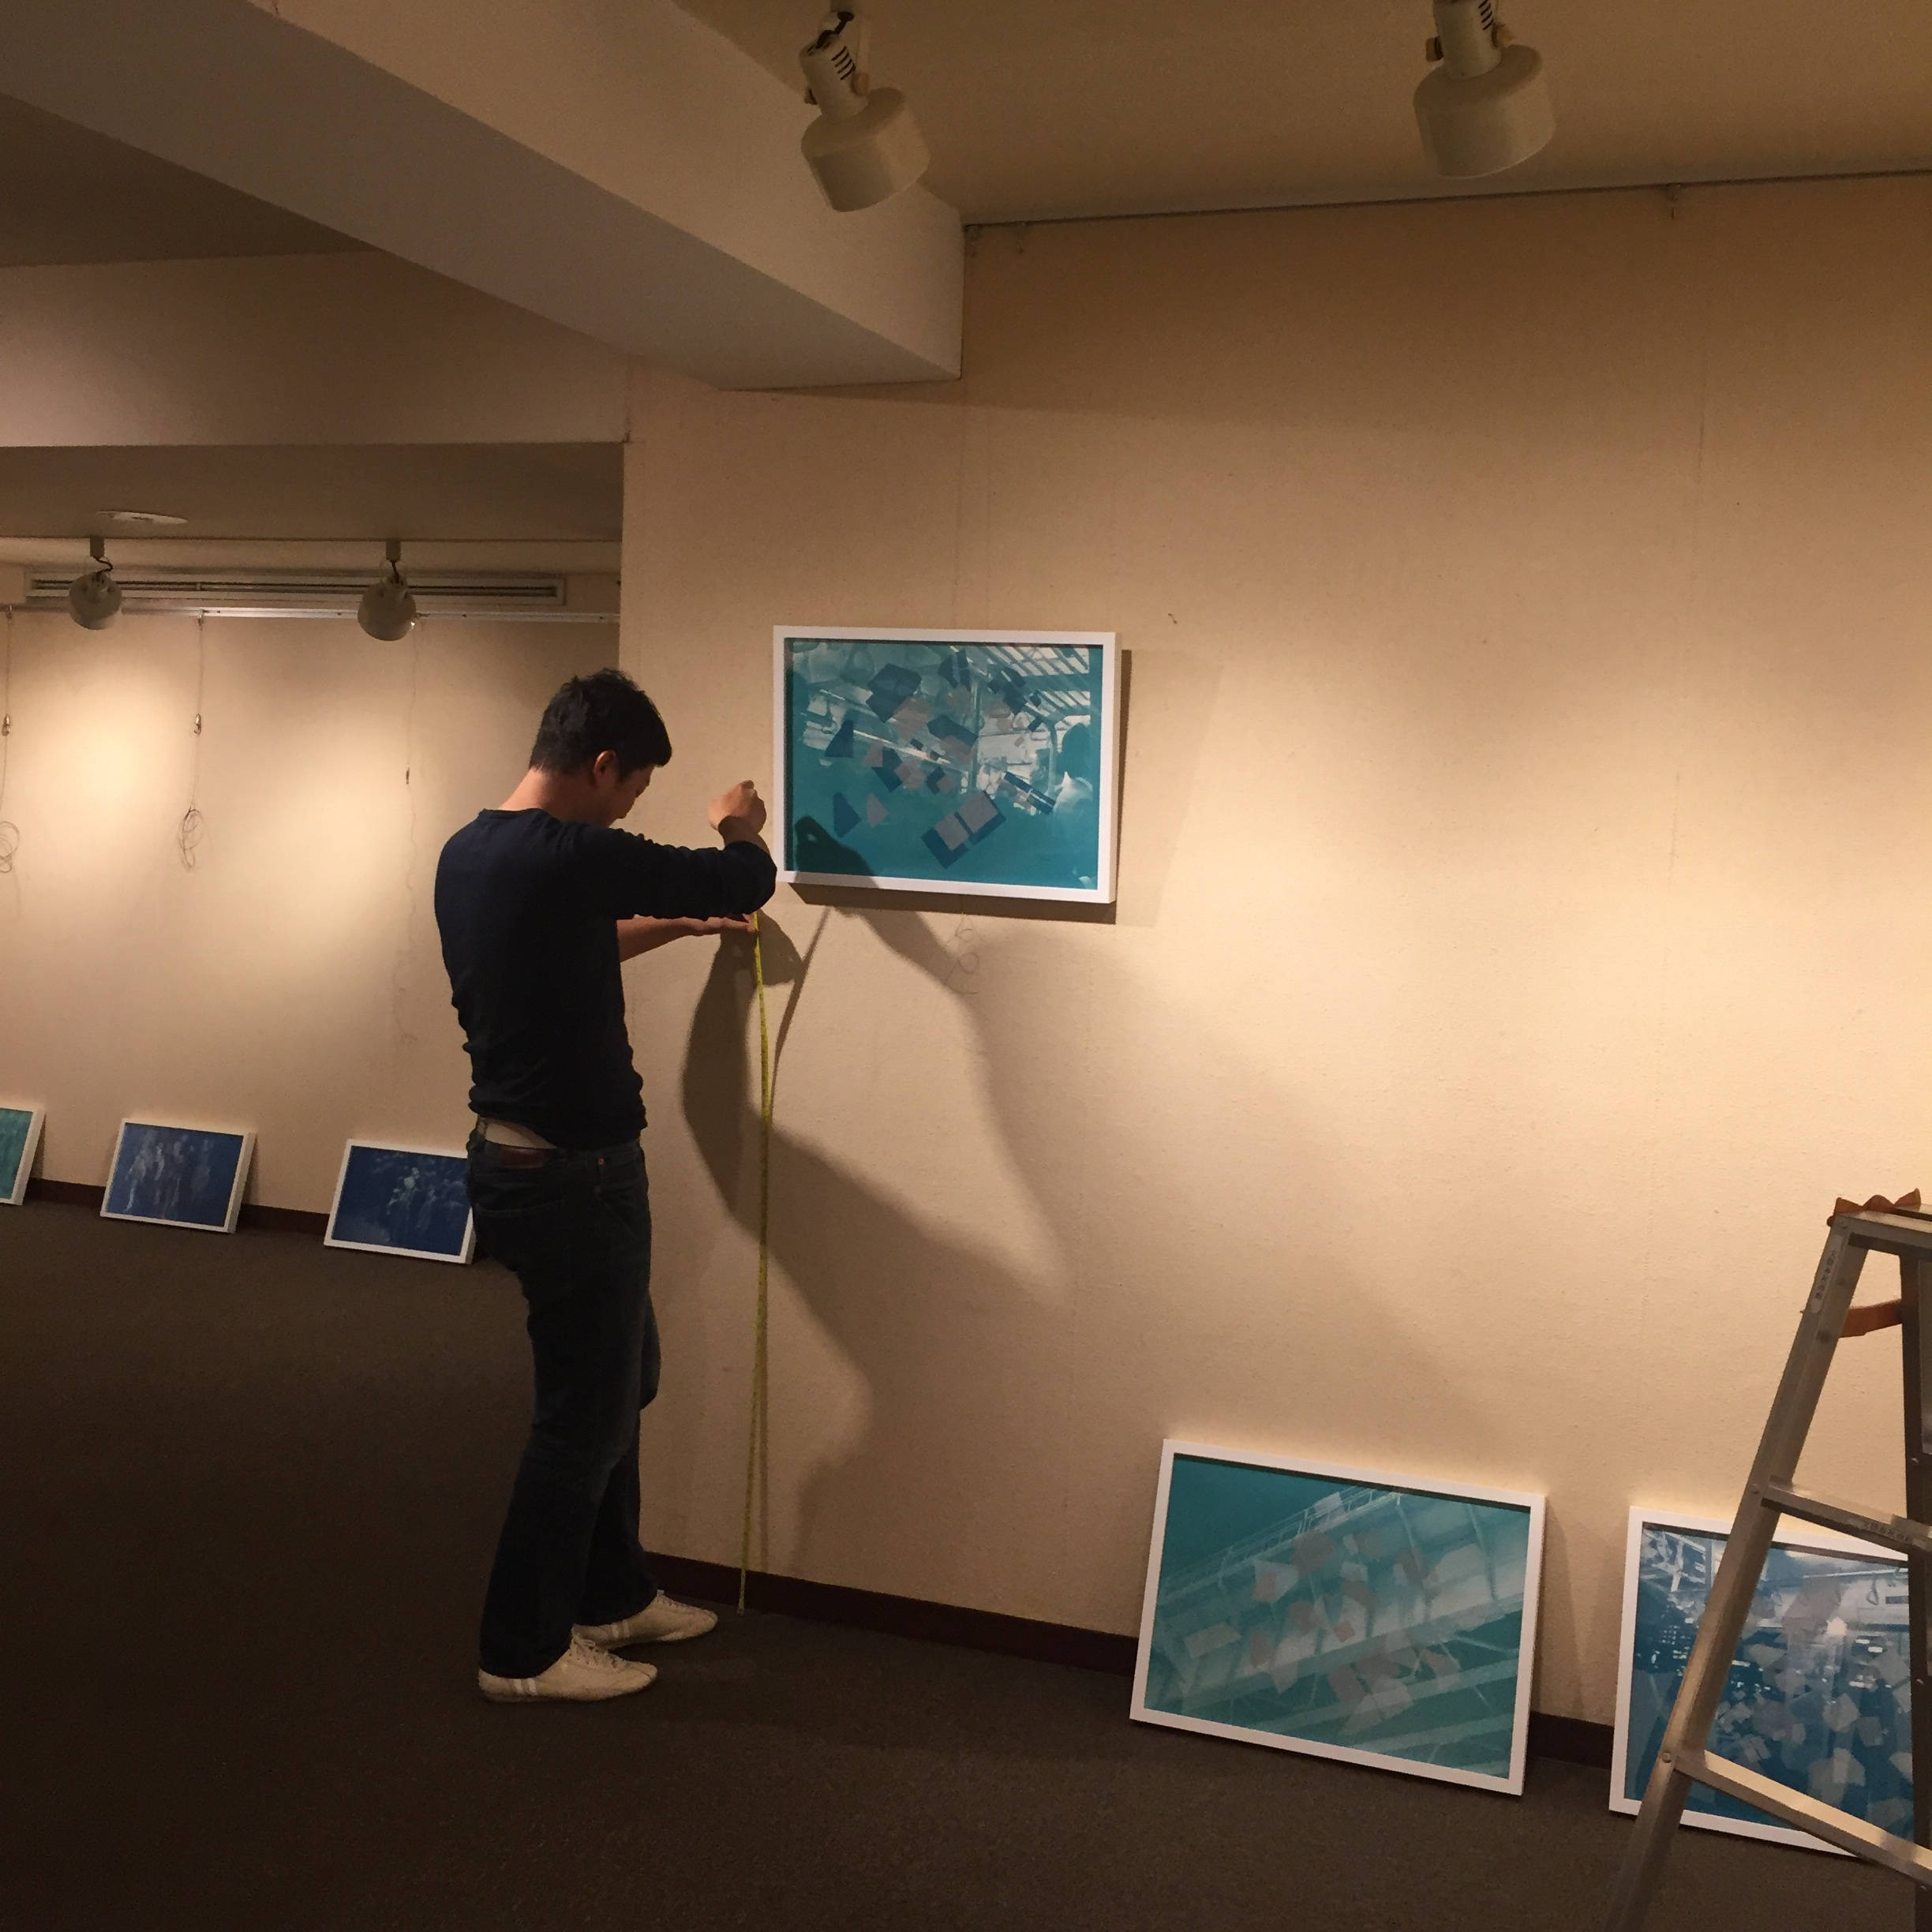 Hanging the show, my good friend put up my works!